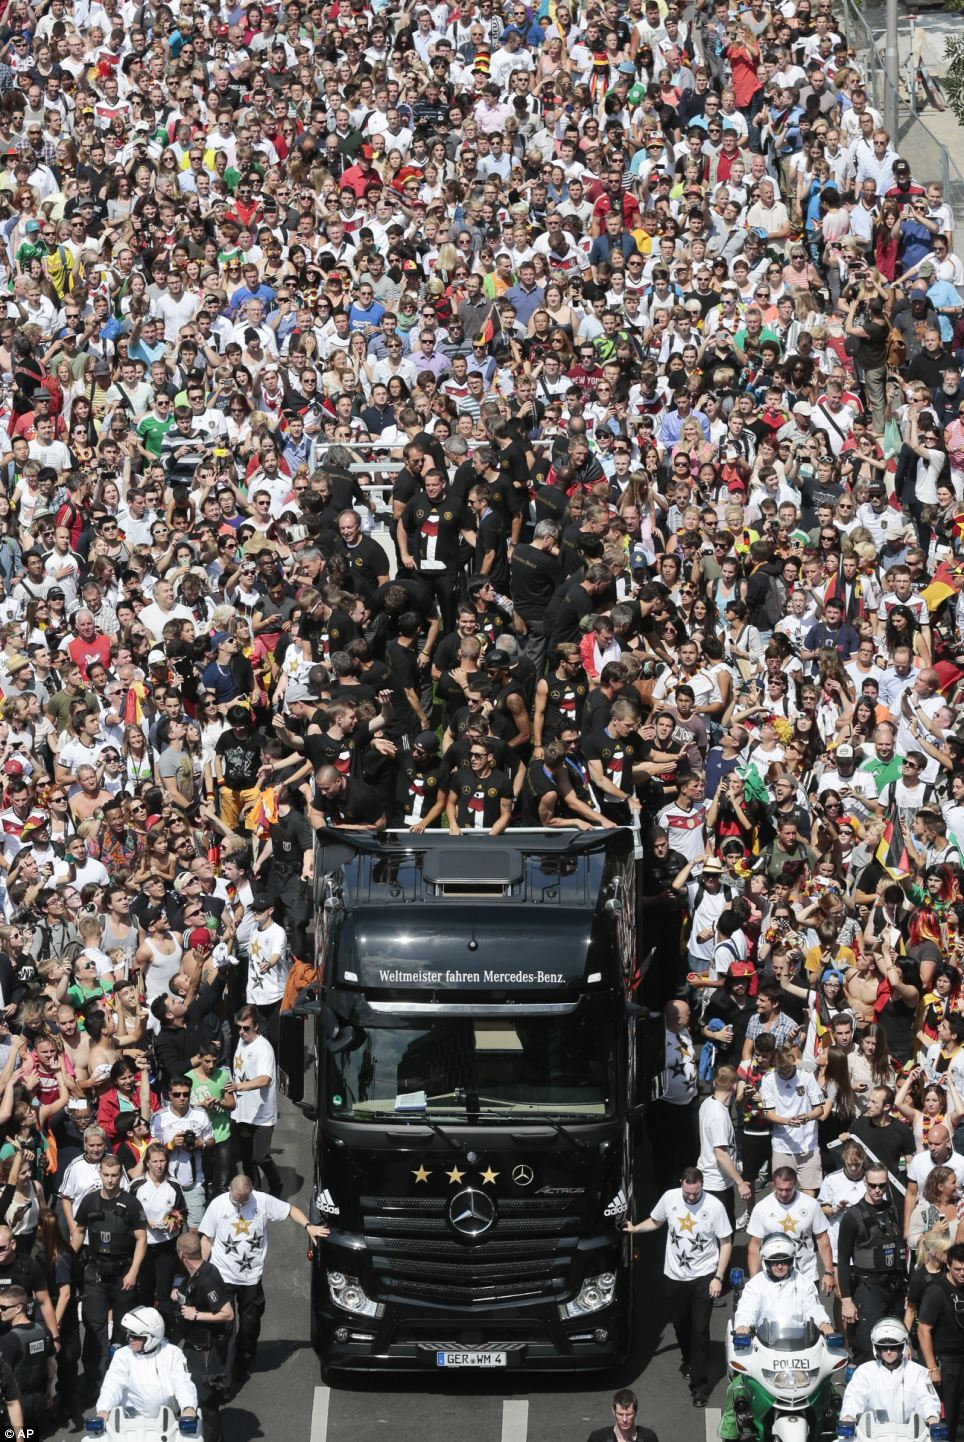 Thousands of Germany fans line the streets as the national football team makes its way through the crowds to Berlin's landmark Brandenburg Gate in an open top truck to celebrate winning the World Cup